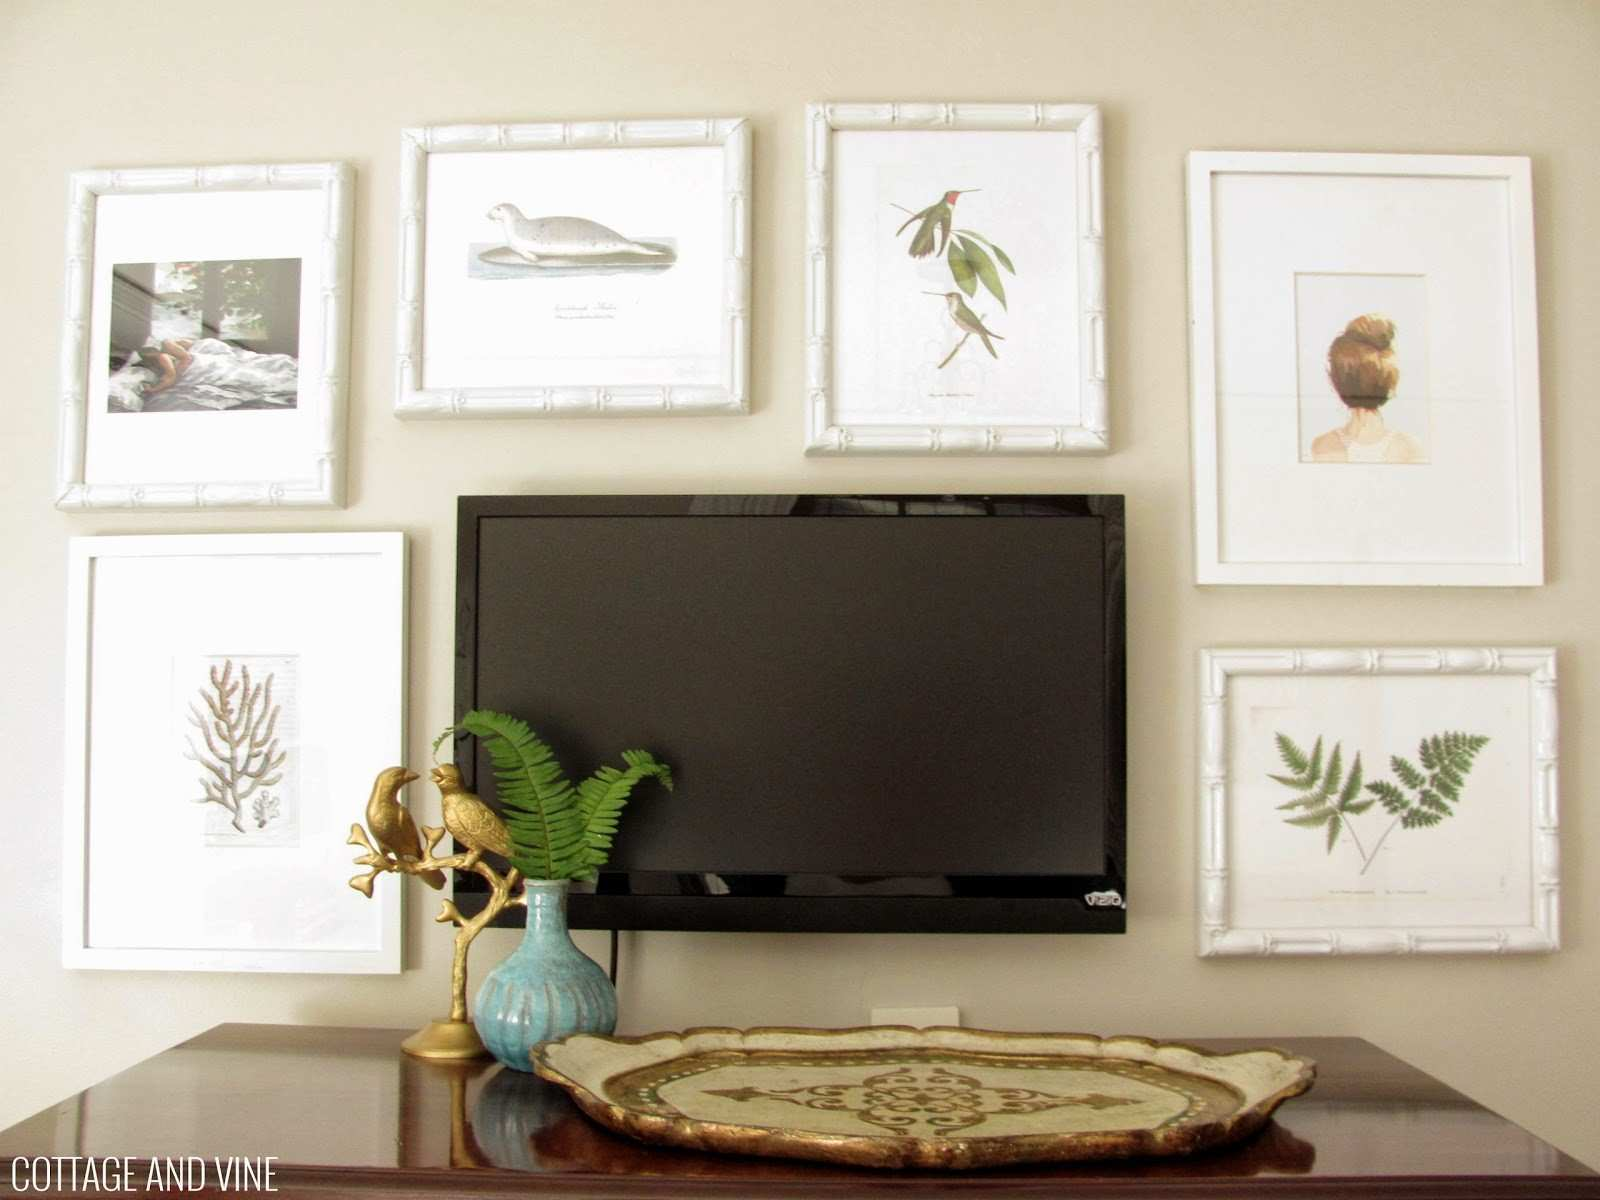 Decorating Around a TV 6 Inspiring Ideas First Apartment Checklist